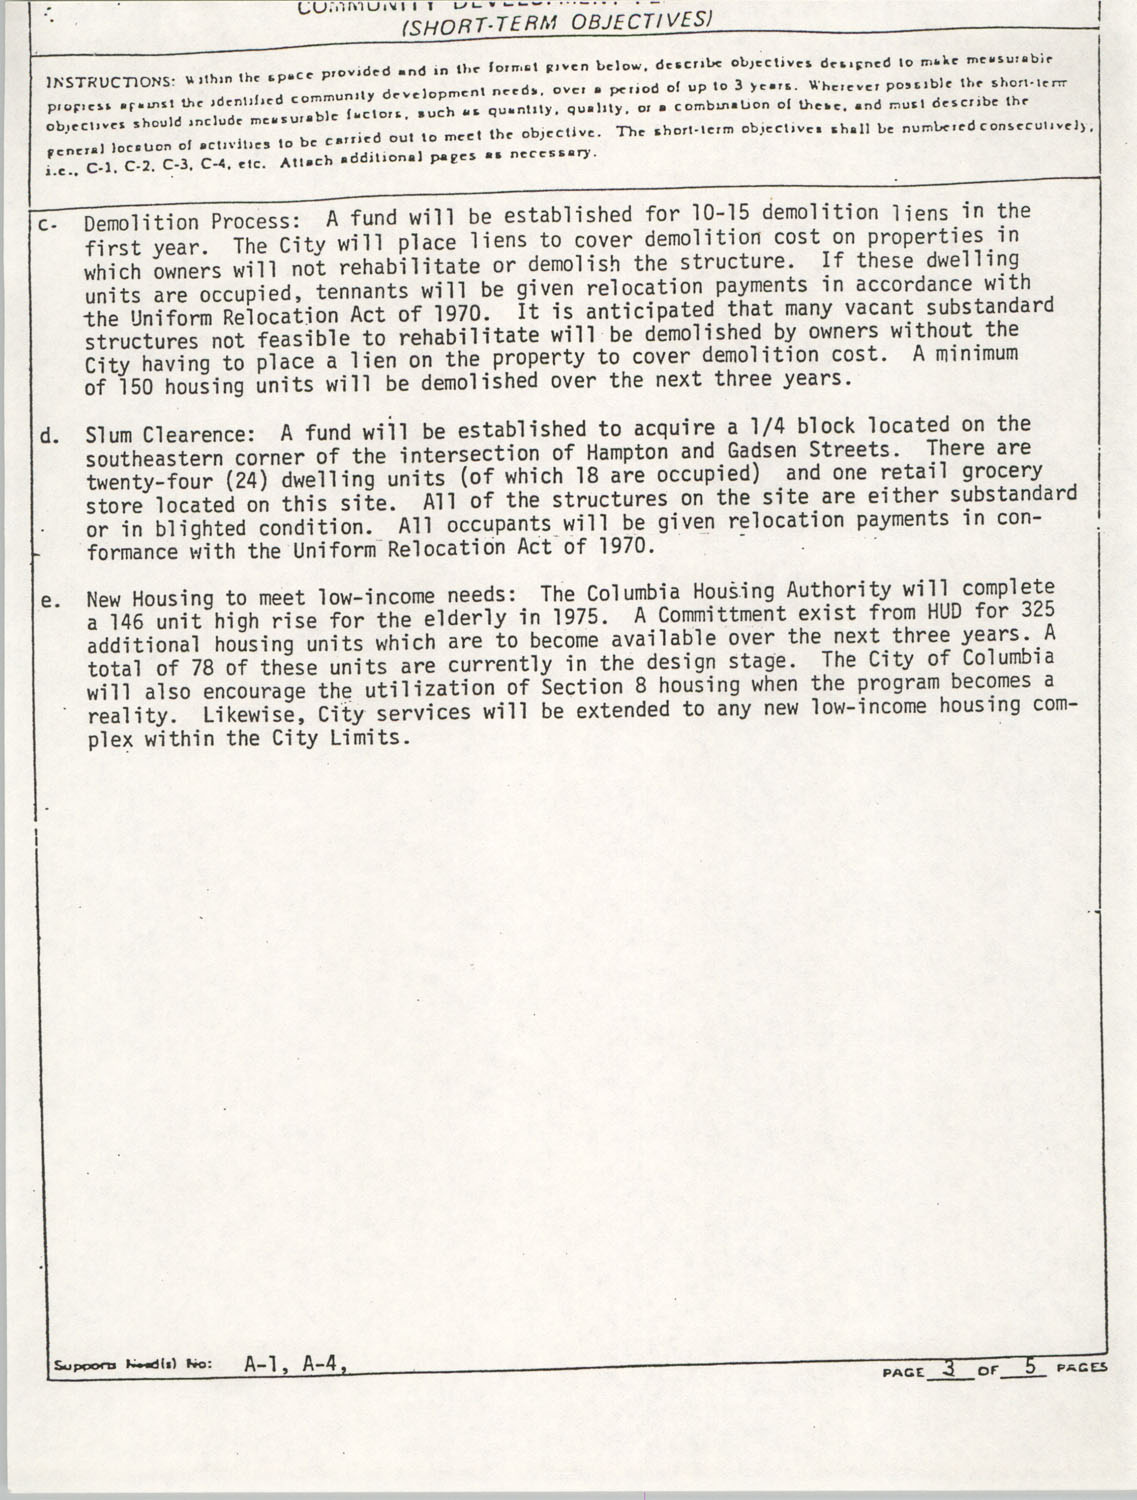 Community Development Act Columbia, South Carolina Materials, South Carolina,  Page 10